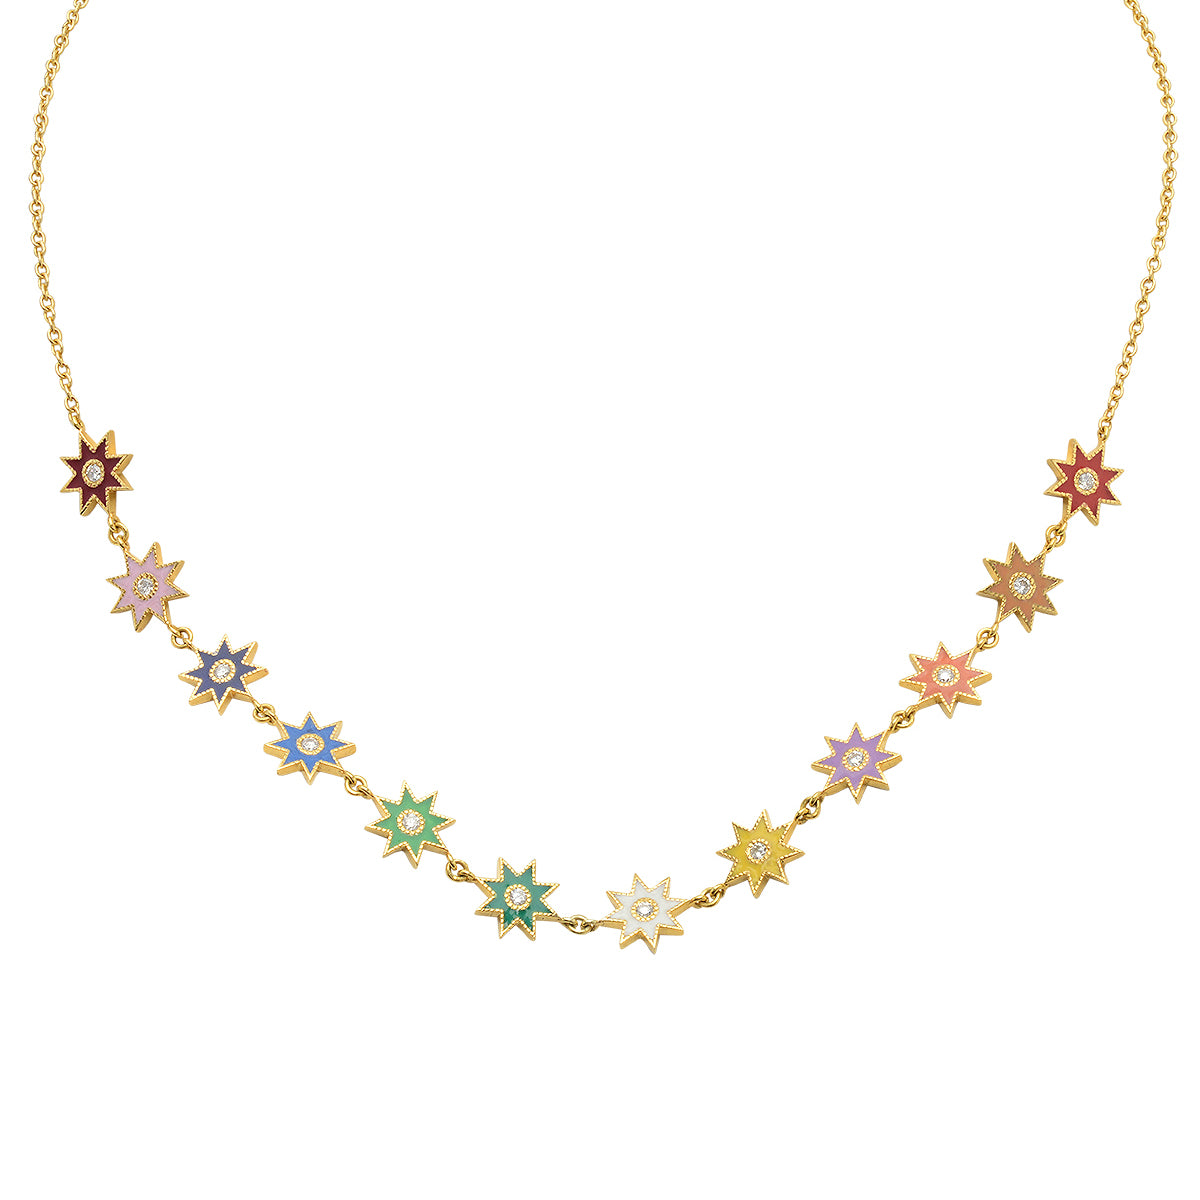 Enamel Star Necklace by Colette for Broken English Jewelry